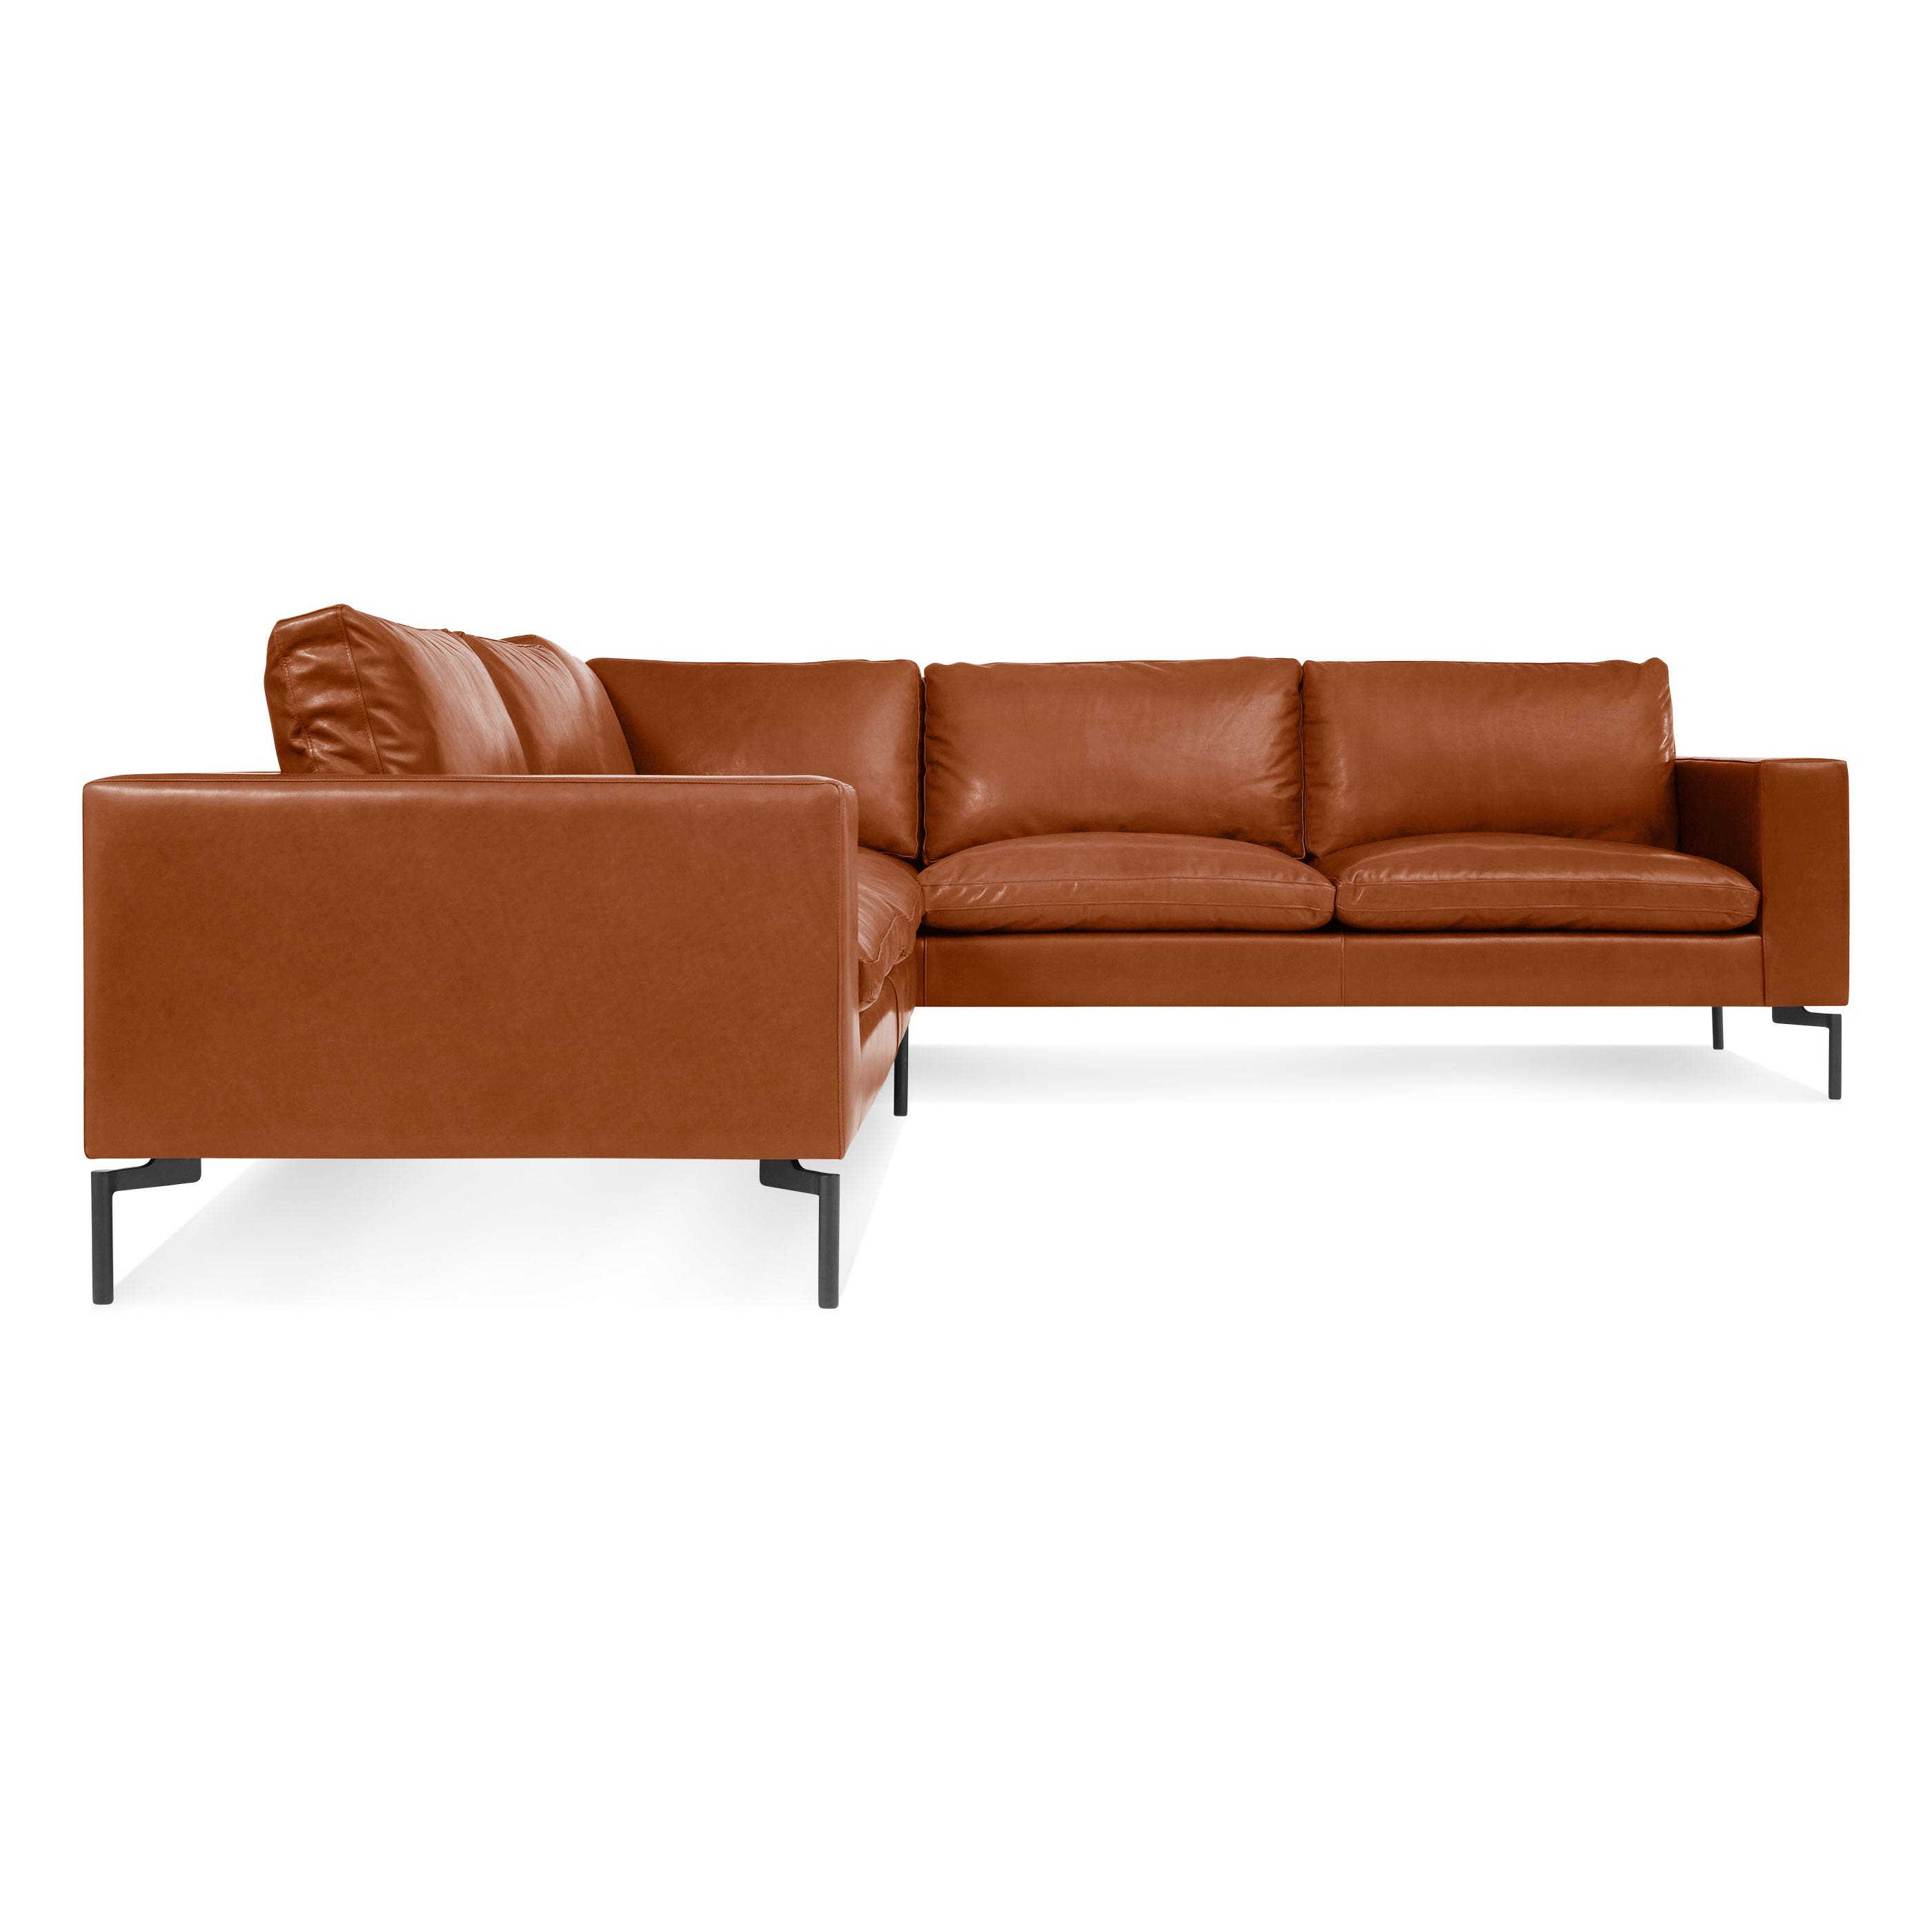 New Standard Small Leather Sectional – Modern Leather Sofa